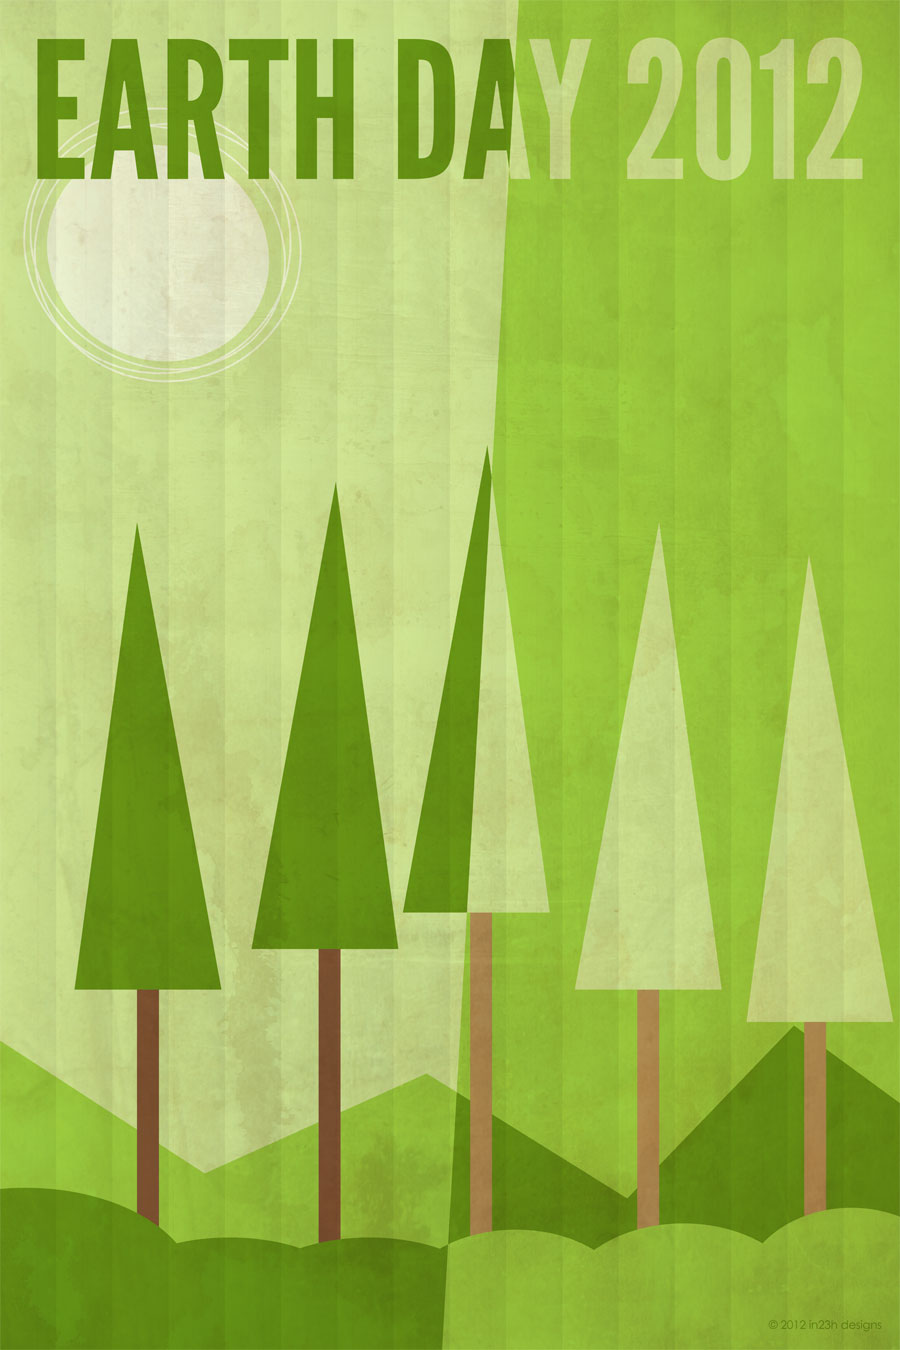 Poster 008 – Earth Day 2012 - in23h designs for Simple Poster Design Inspiration  181pct